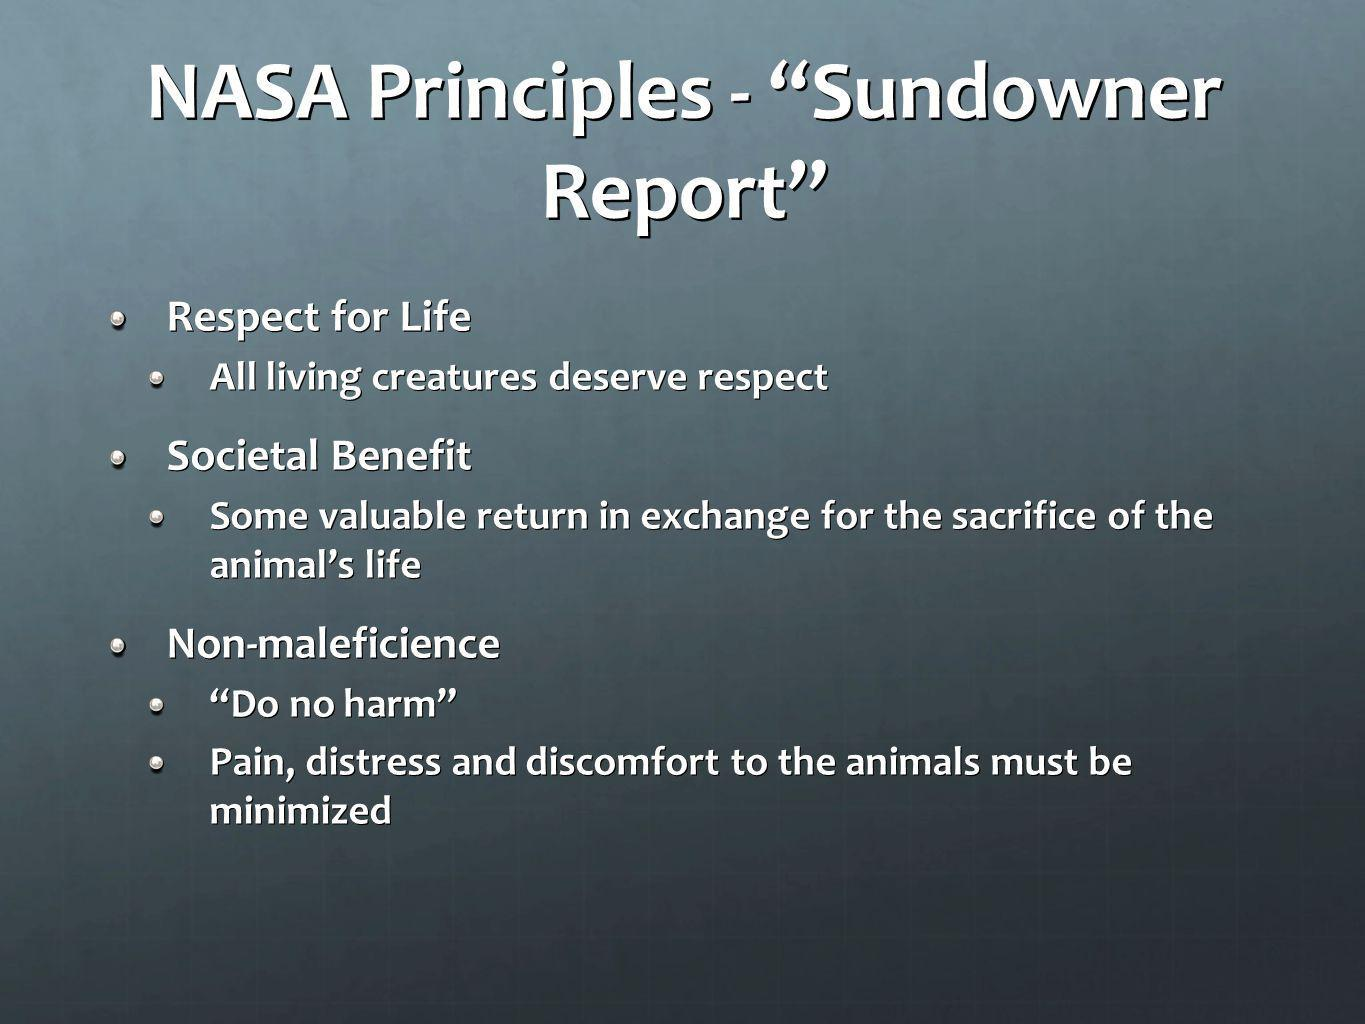 NASA Principles - Sundowner Report